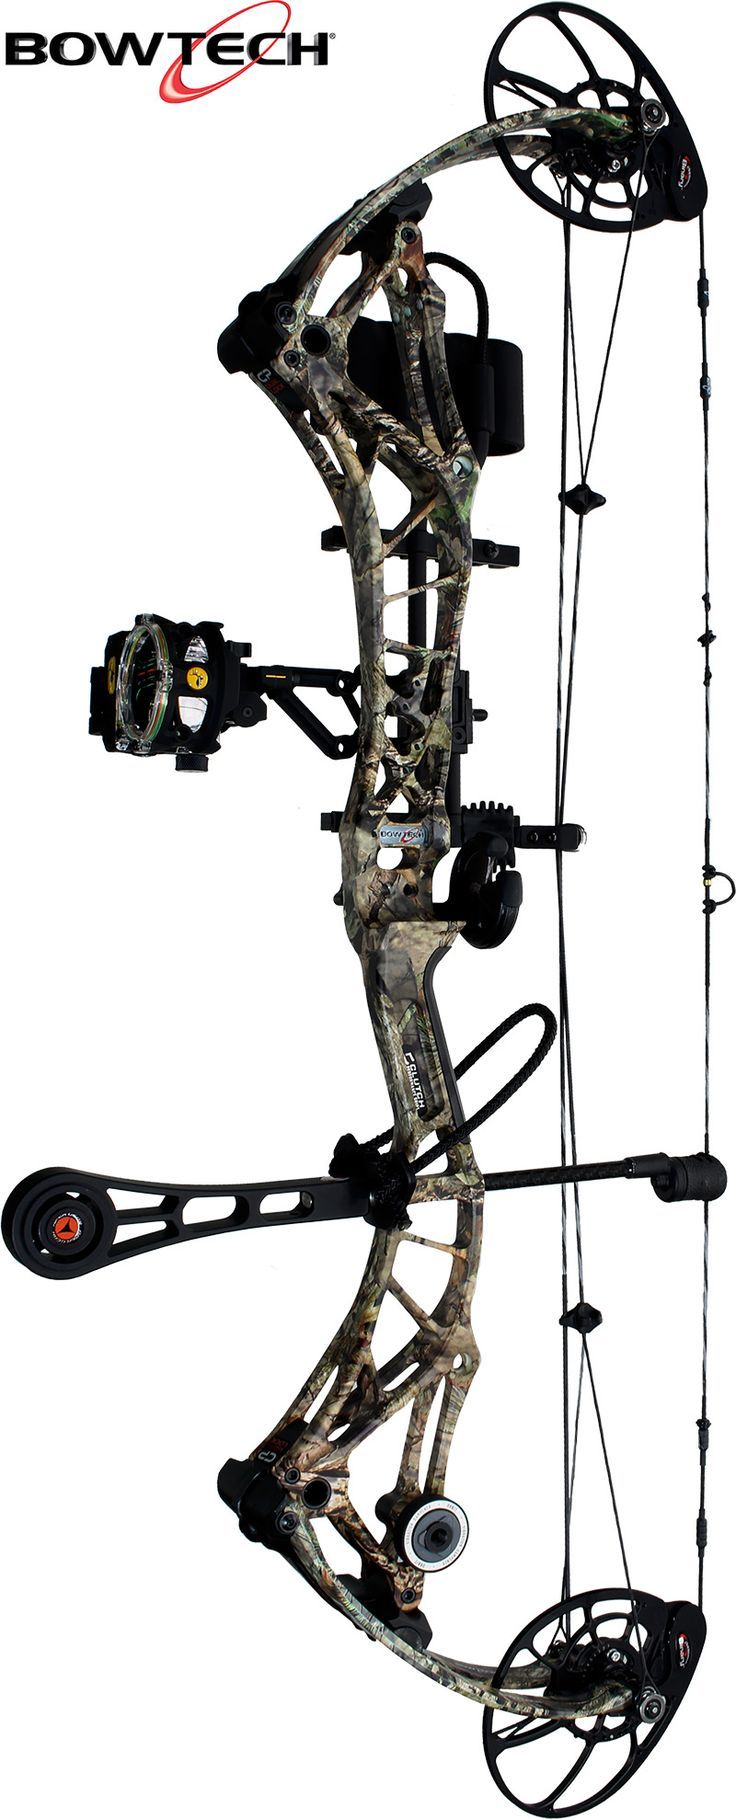 2018 Bowtech Realm-X, Pro-Shop Prepped Bowhunting Package